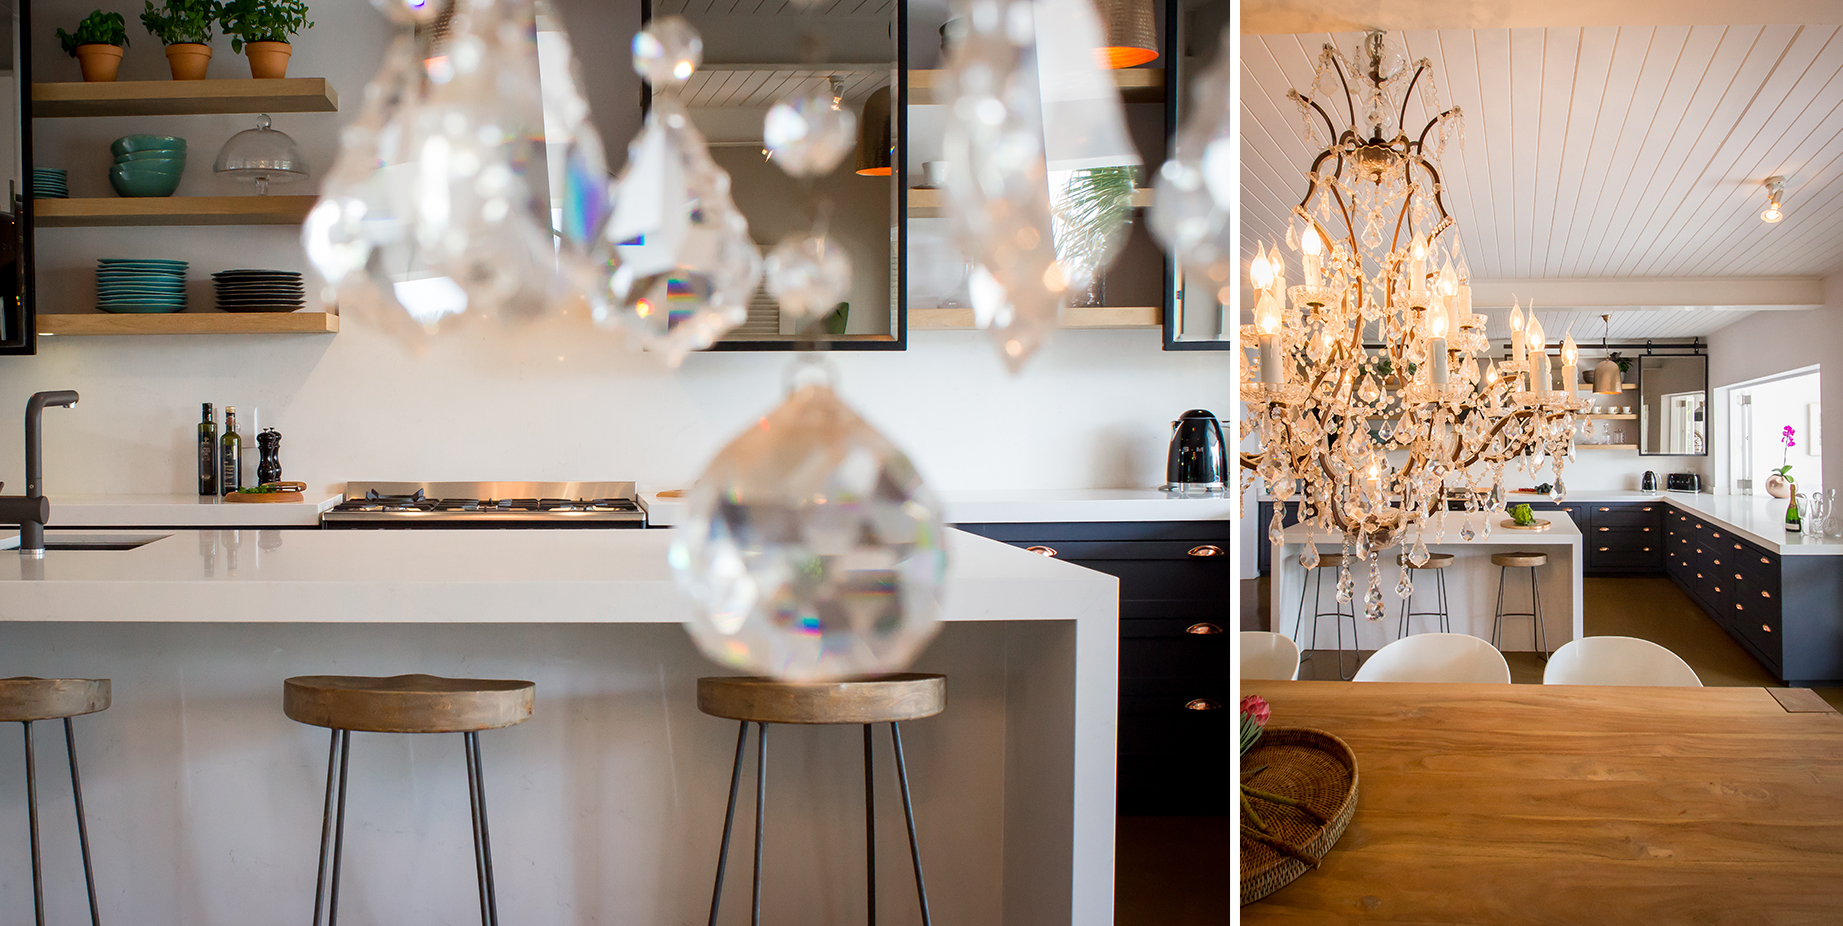 One of Kim's favourite design elements are the rolling bronze mirrors that help to reflect the light from outside. Striking feature lighting also helps to create a glamorous look and feel in the space.